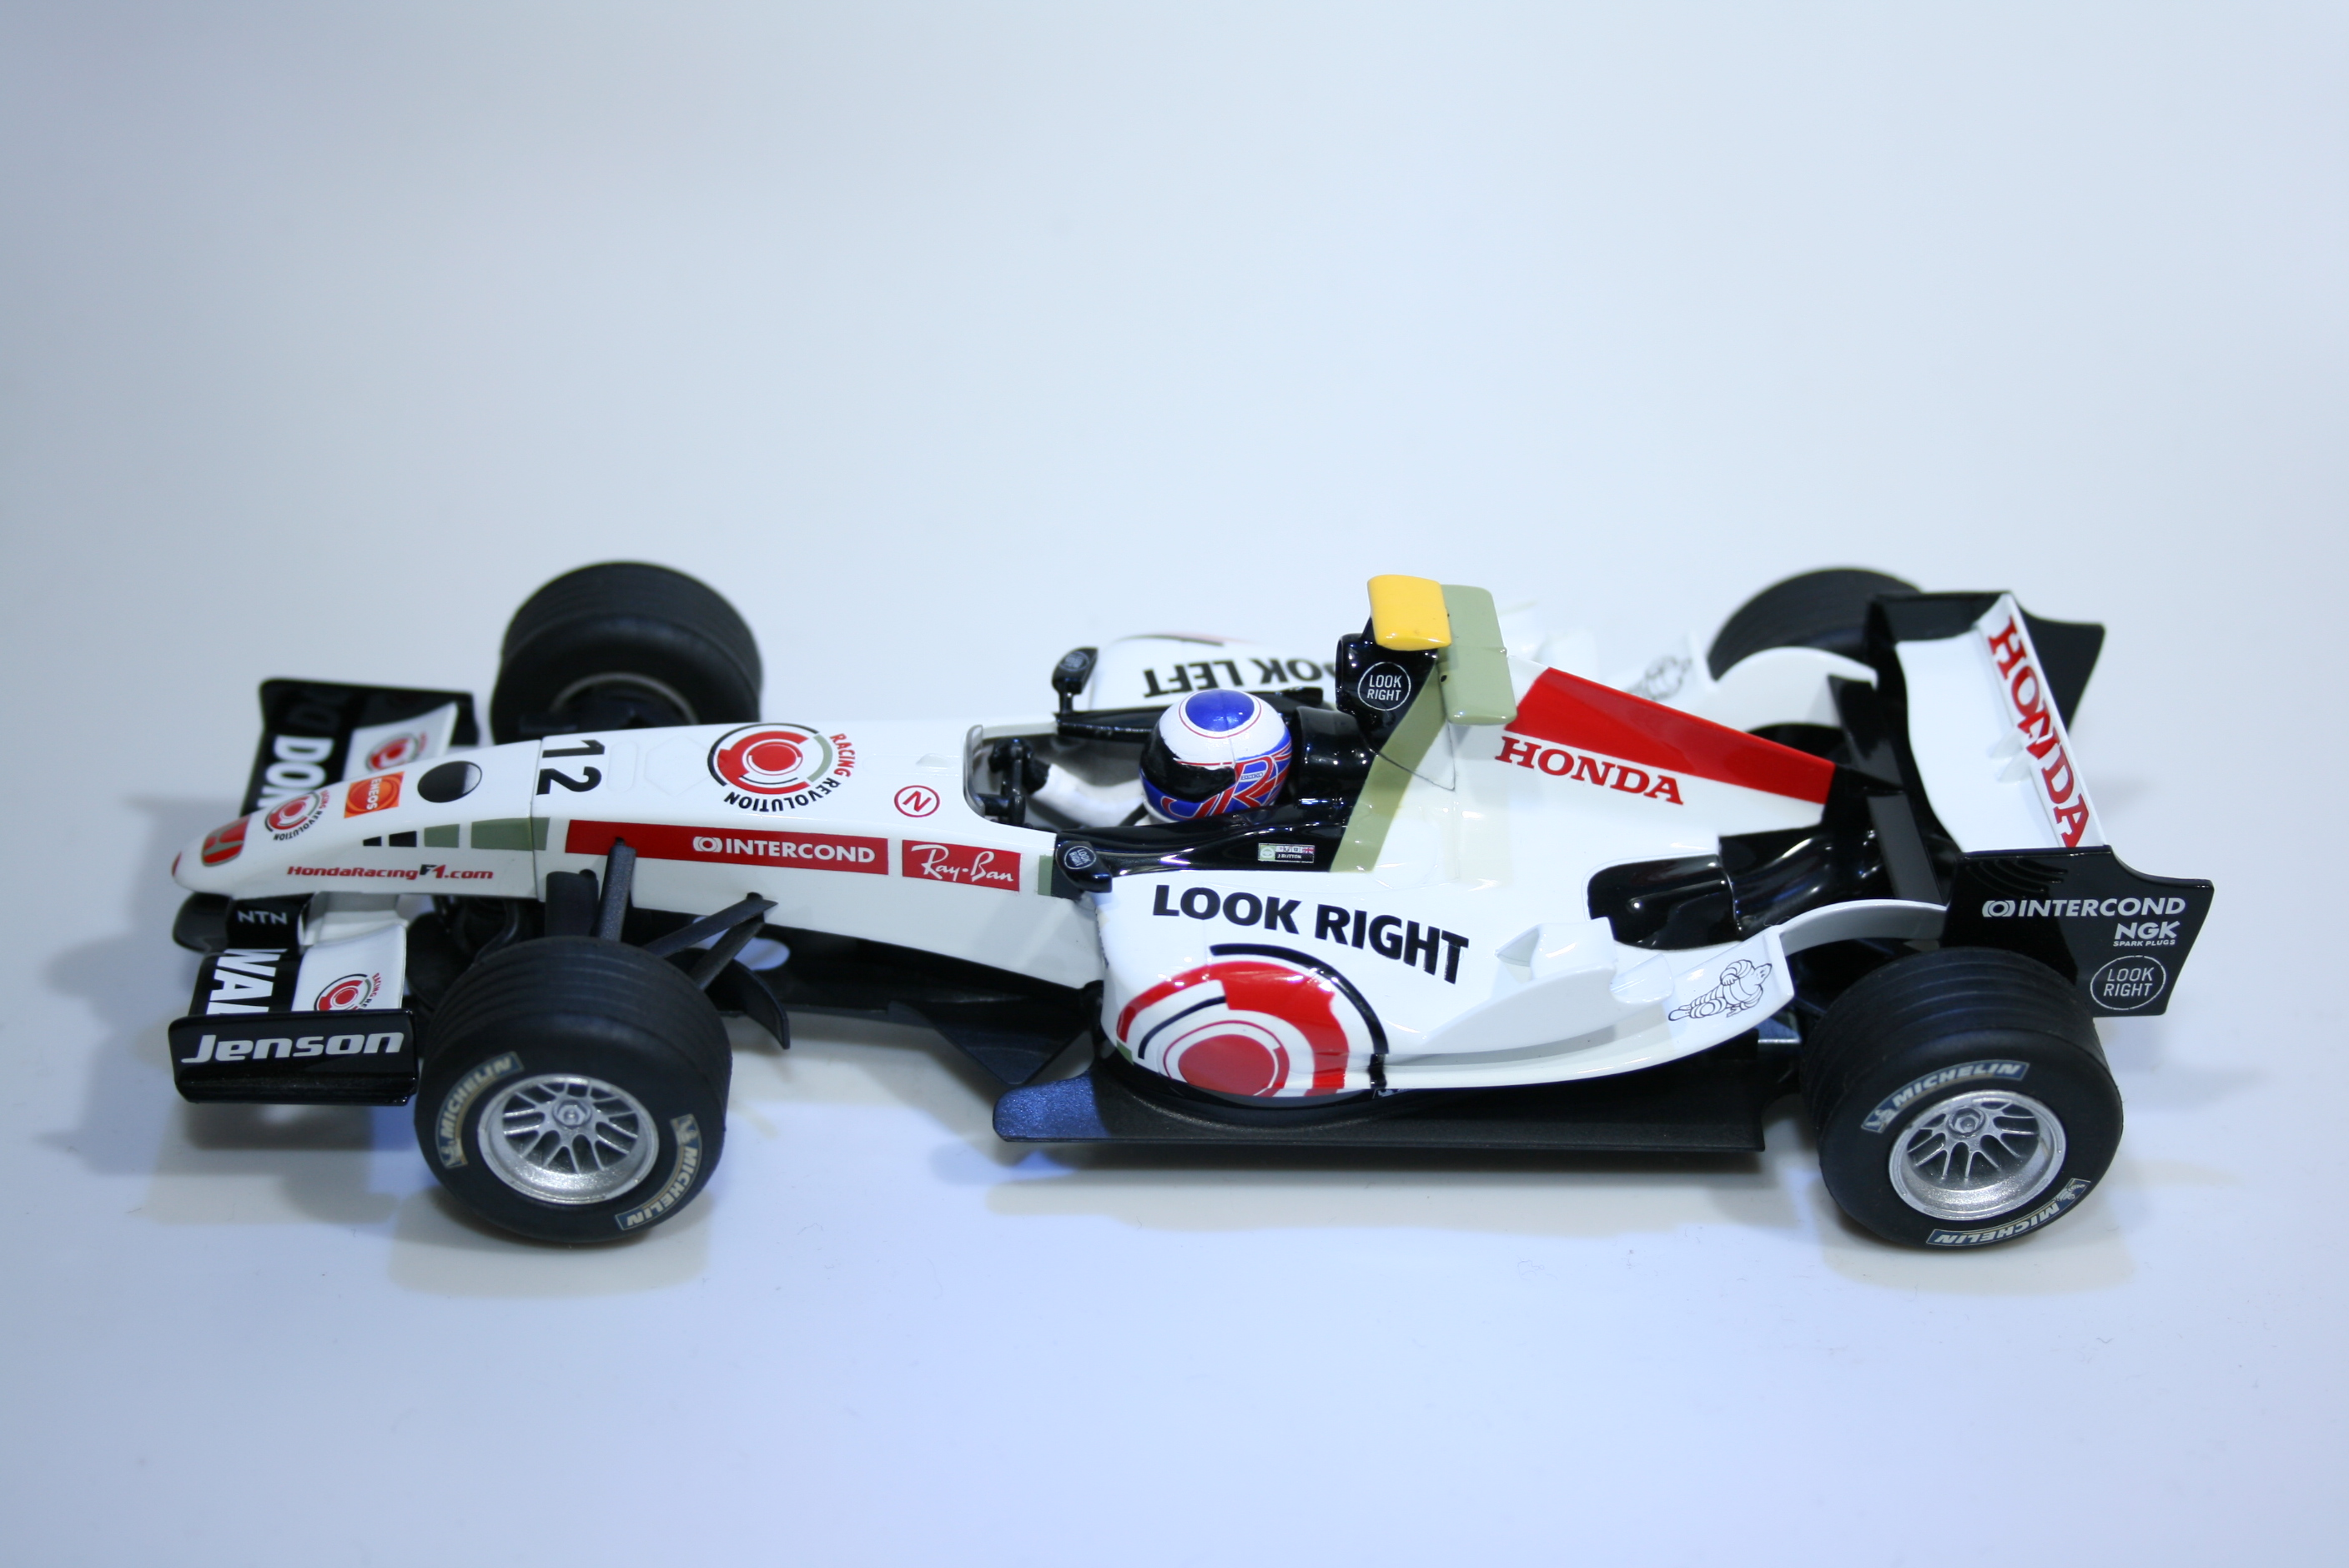 319 Honda RA106 2006 J Button Scalextric C2715 2006 Boxed